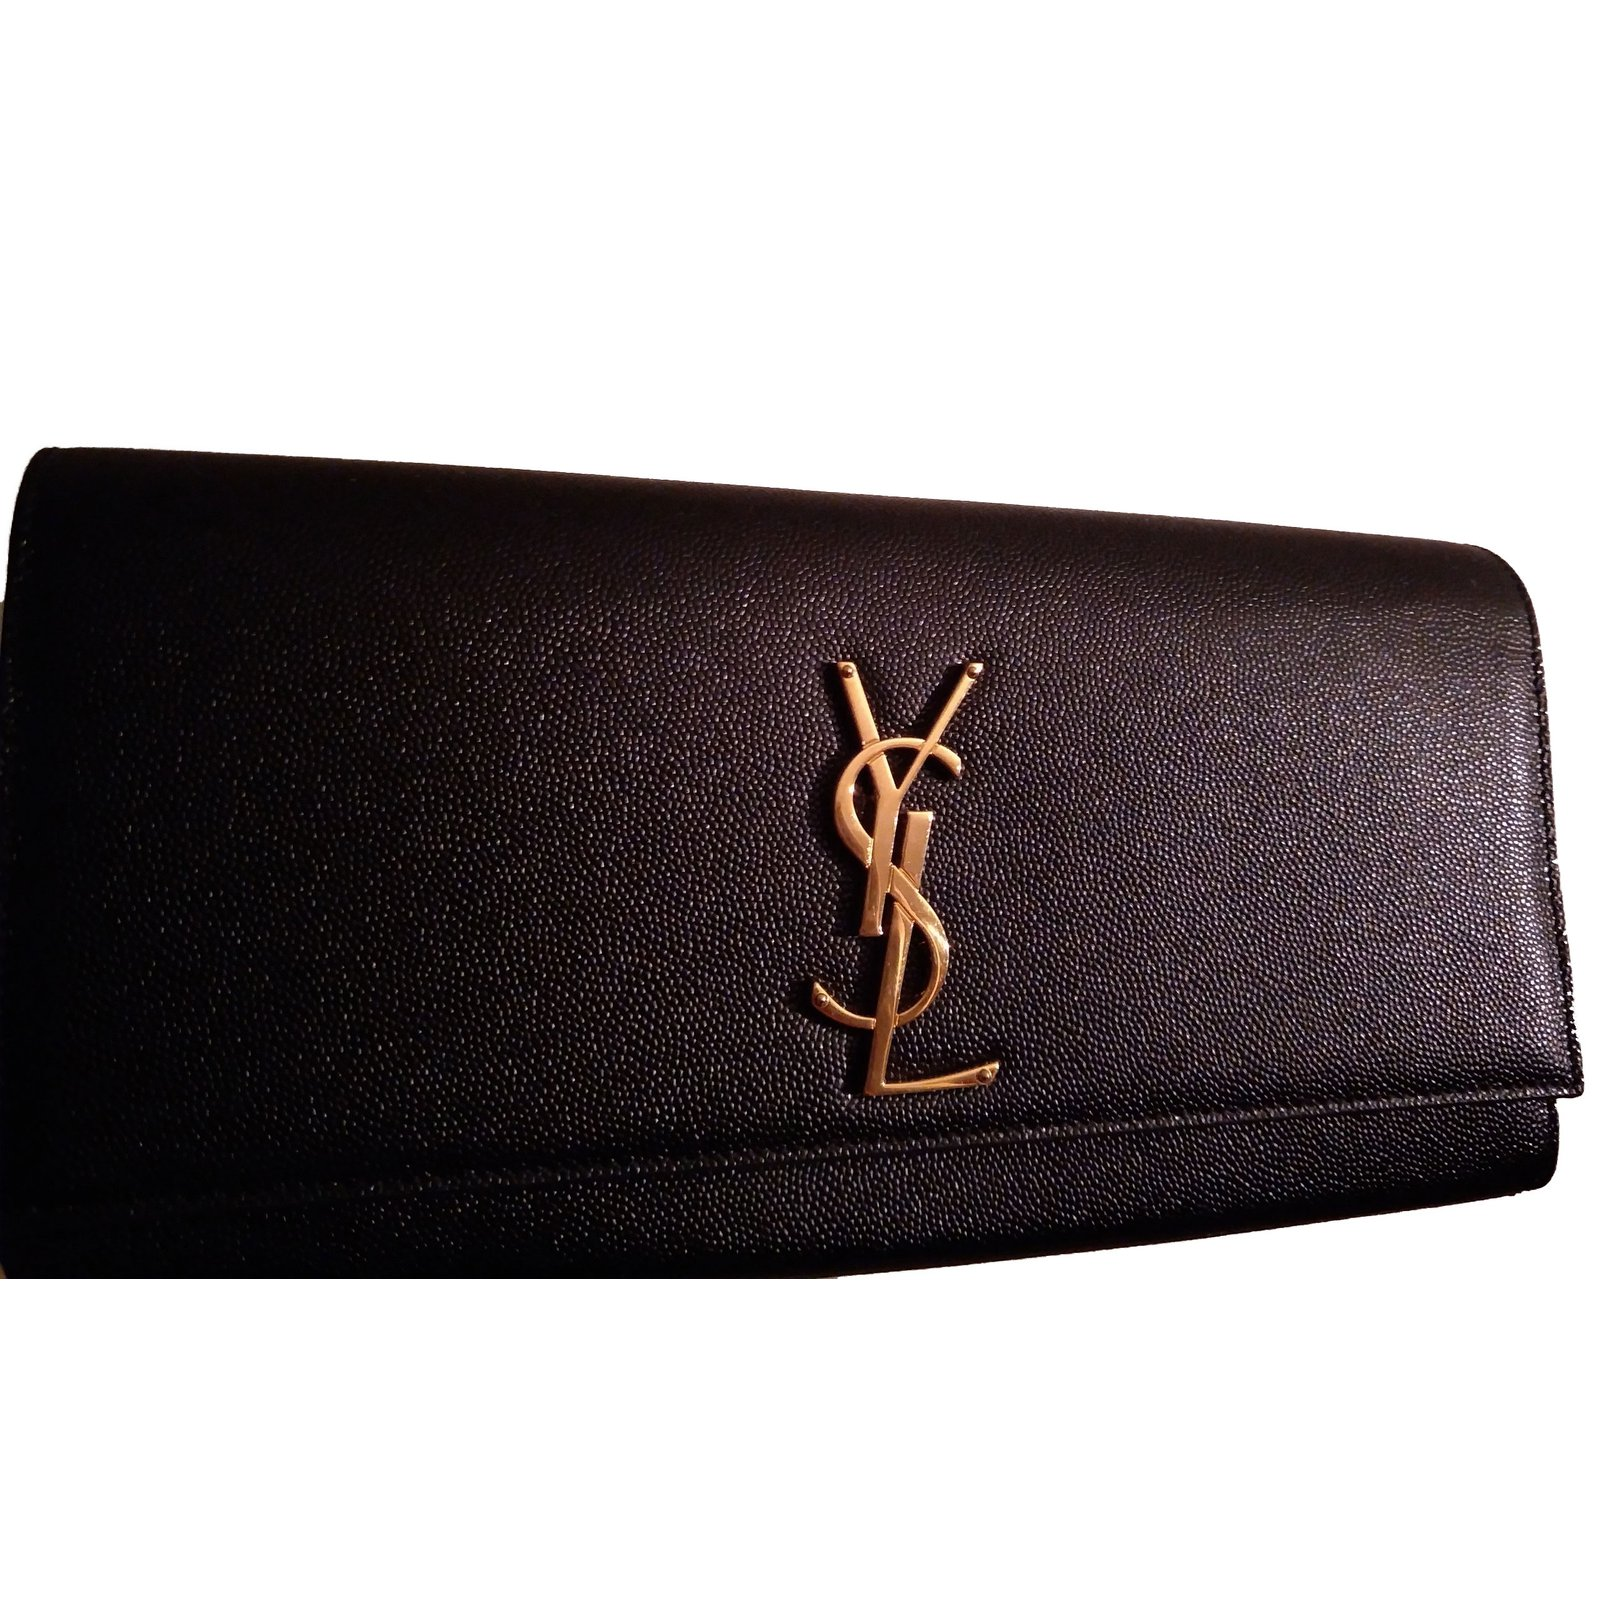 978b8fcd33a Yves Saint Laurent Clutch bags Clutch bags Leather Black,Golden ref.65847